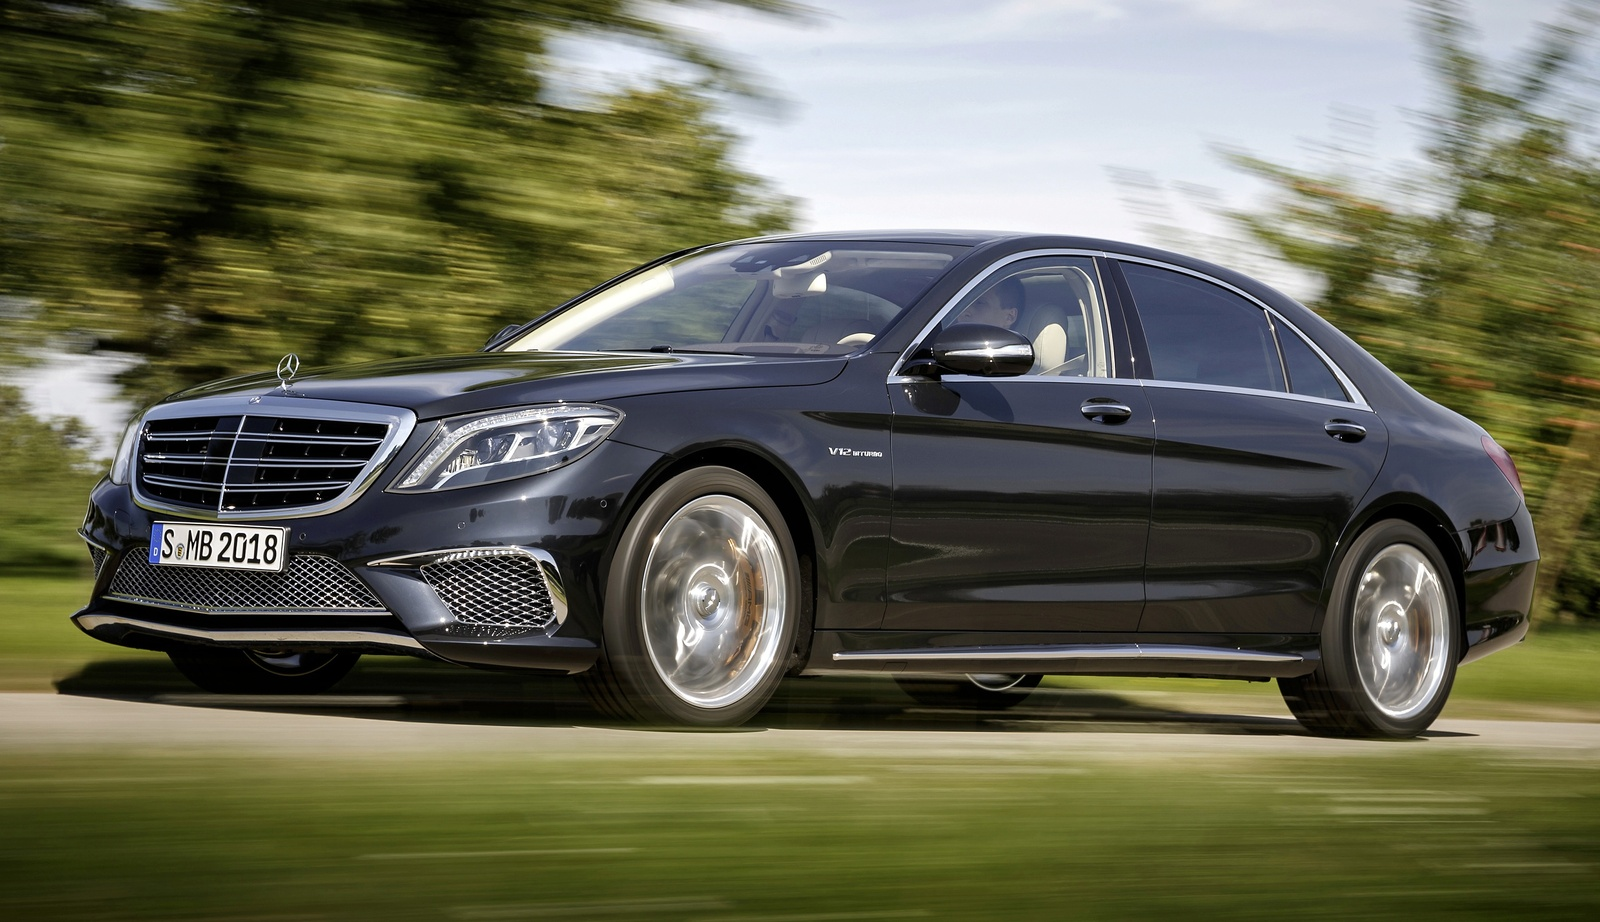 2015 mercedes benz s class review cargurus for Mercedes benz van 2015